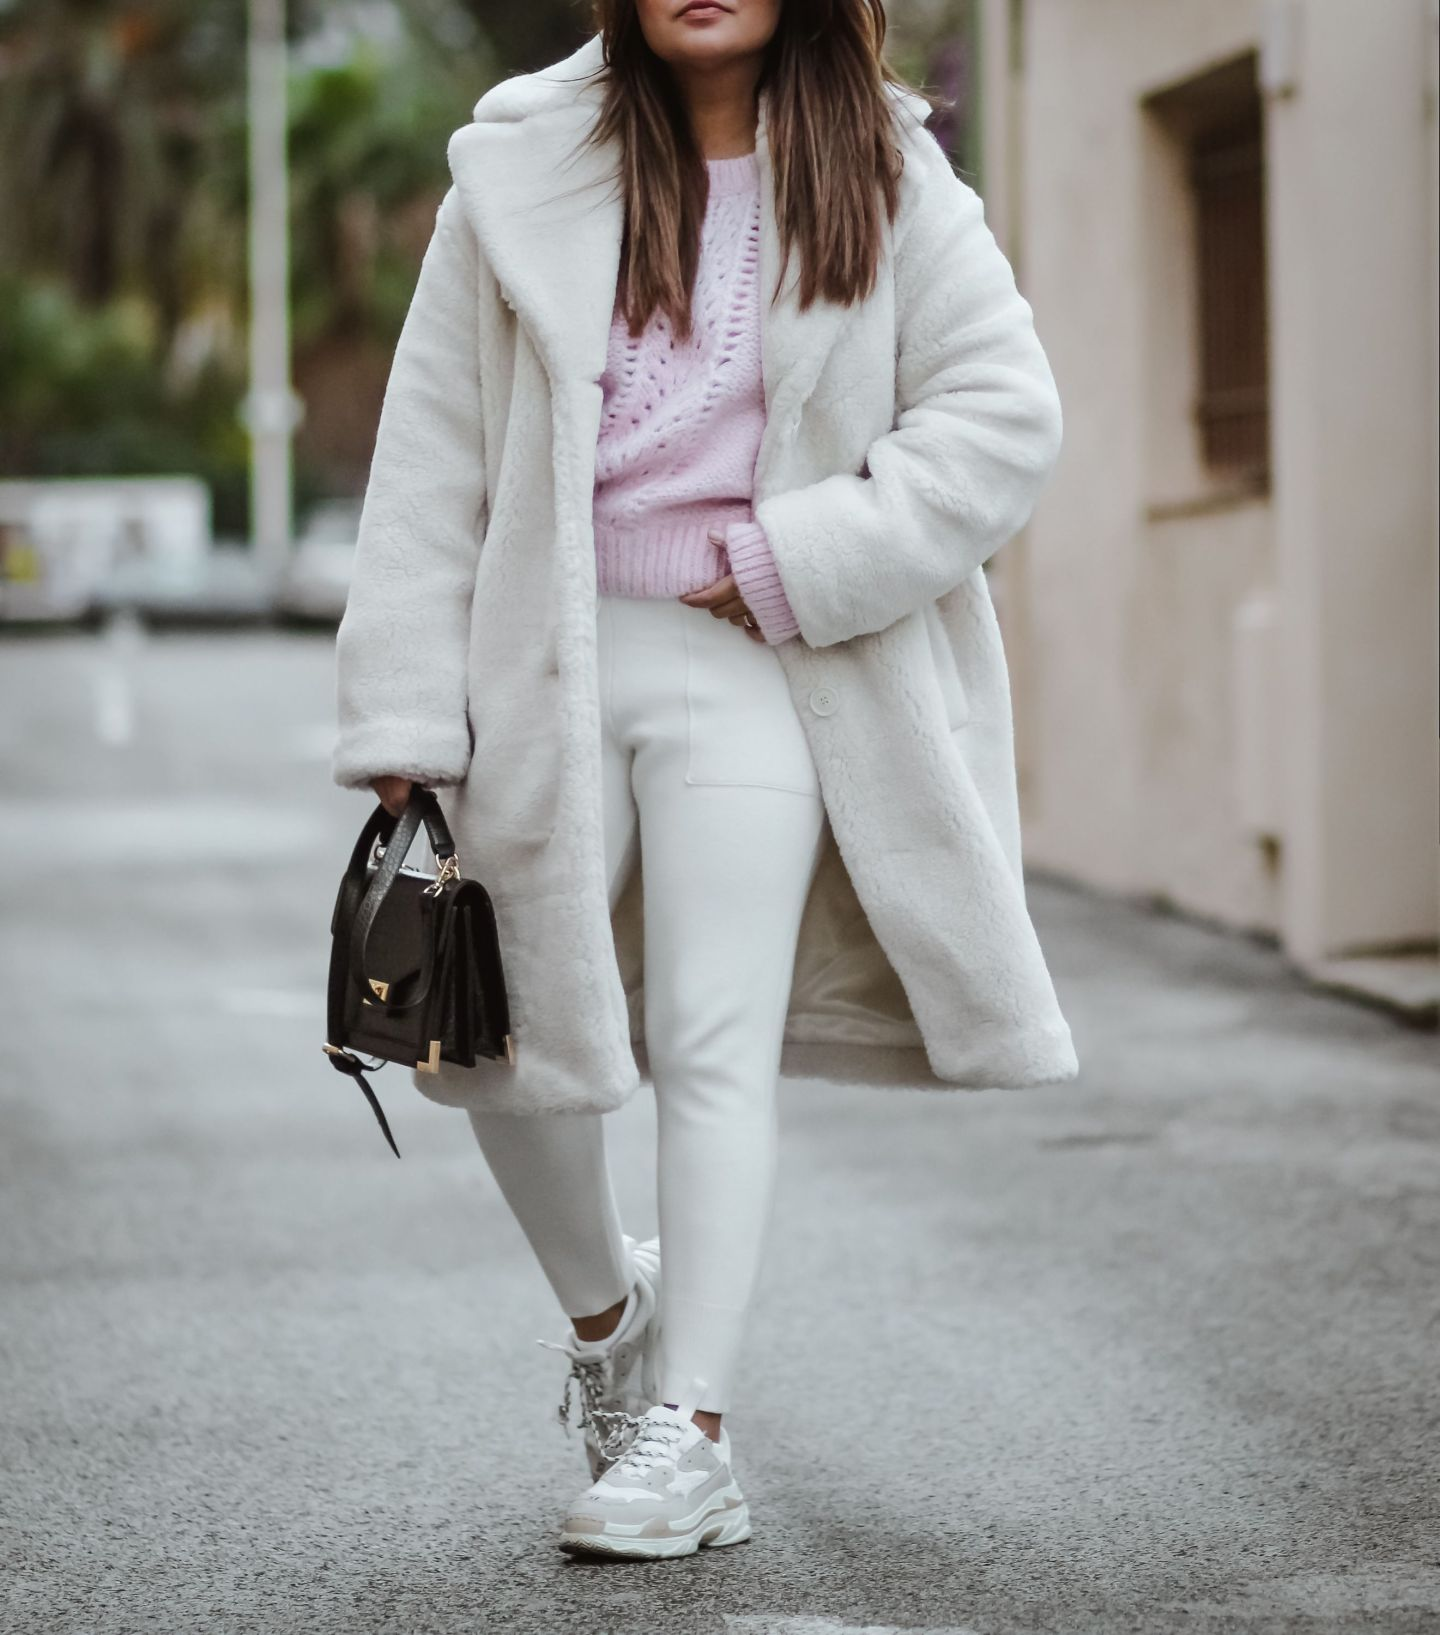 manteau blanc femmme, and other stories, manteau teddy, teddy coat, zara, the kooples, the green ananas, the white teddy coat